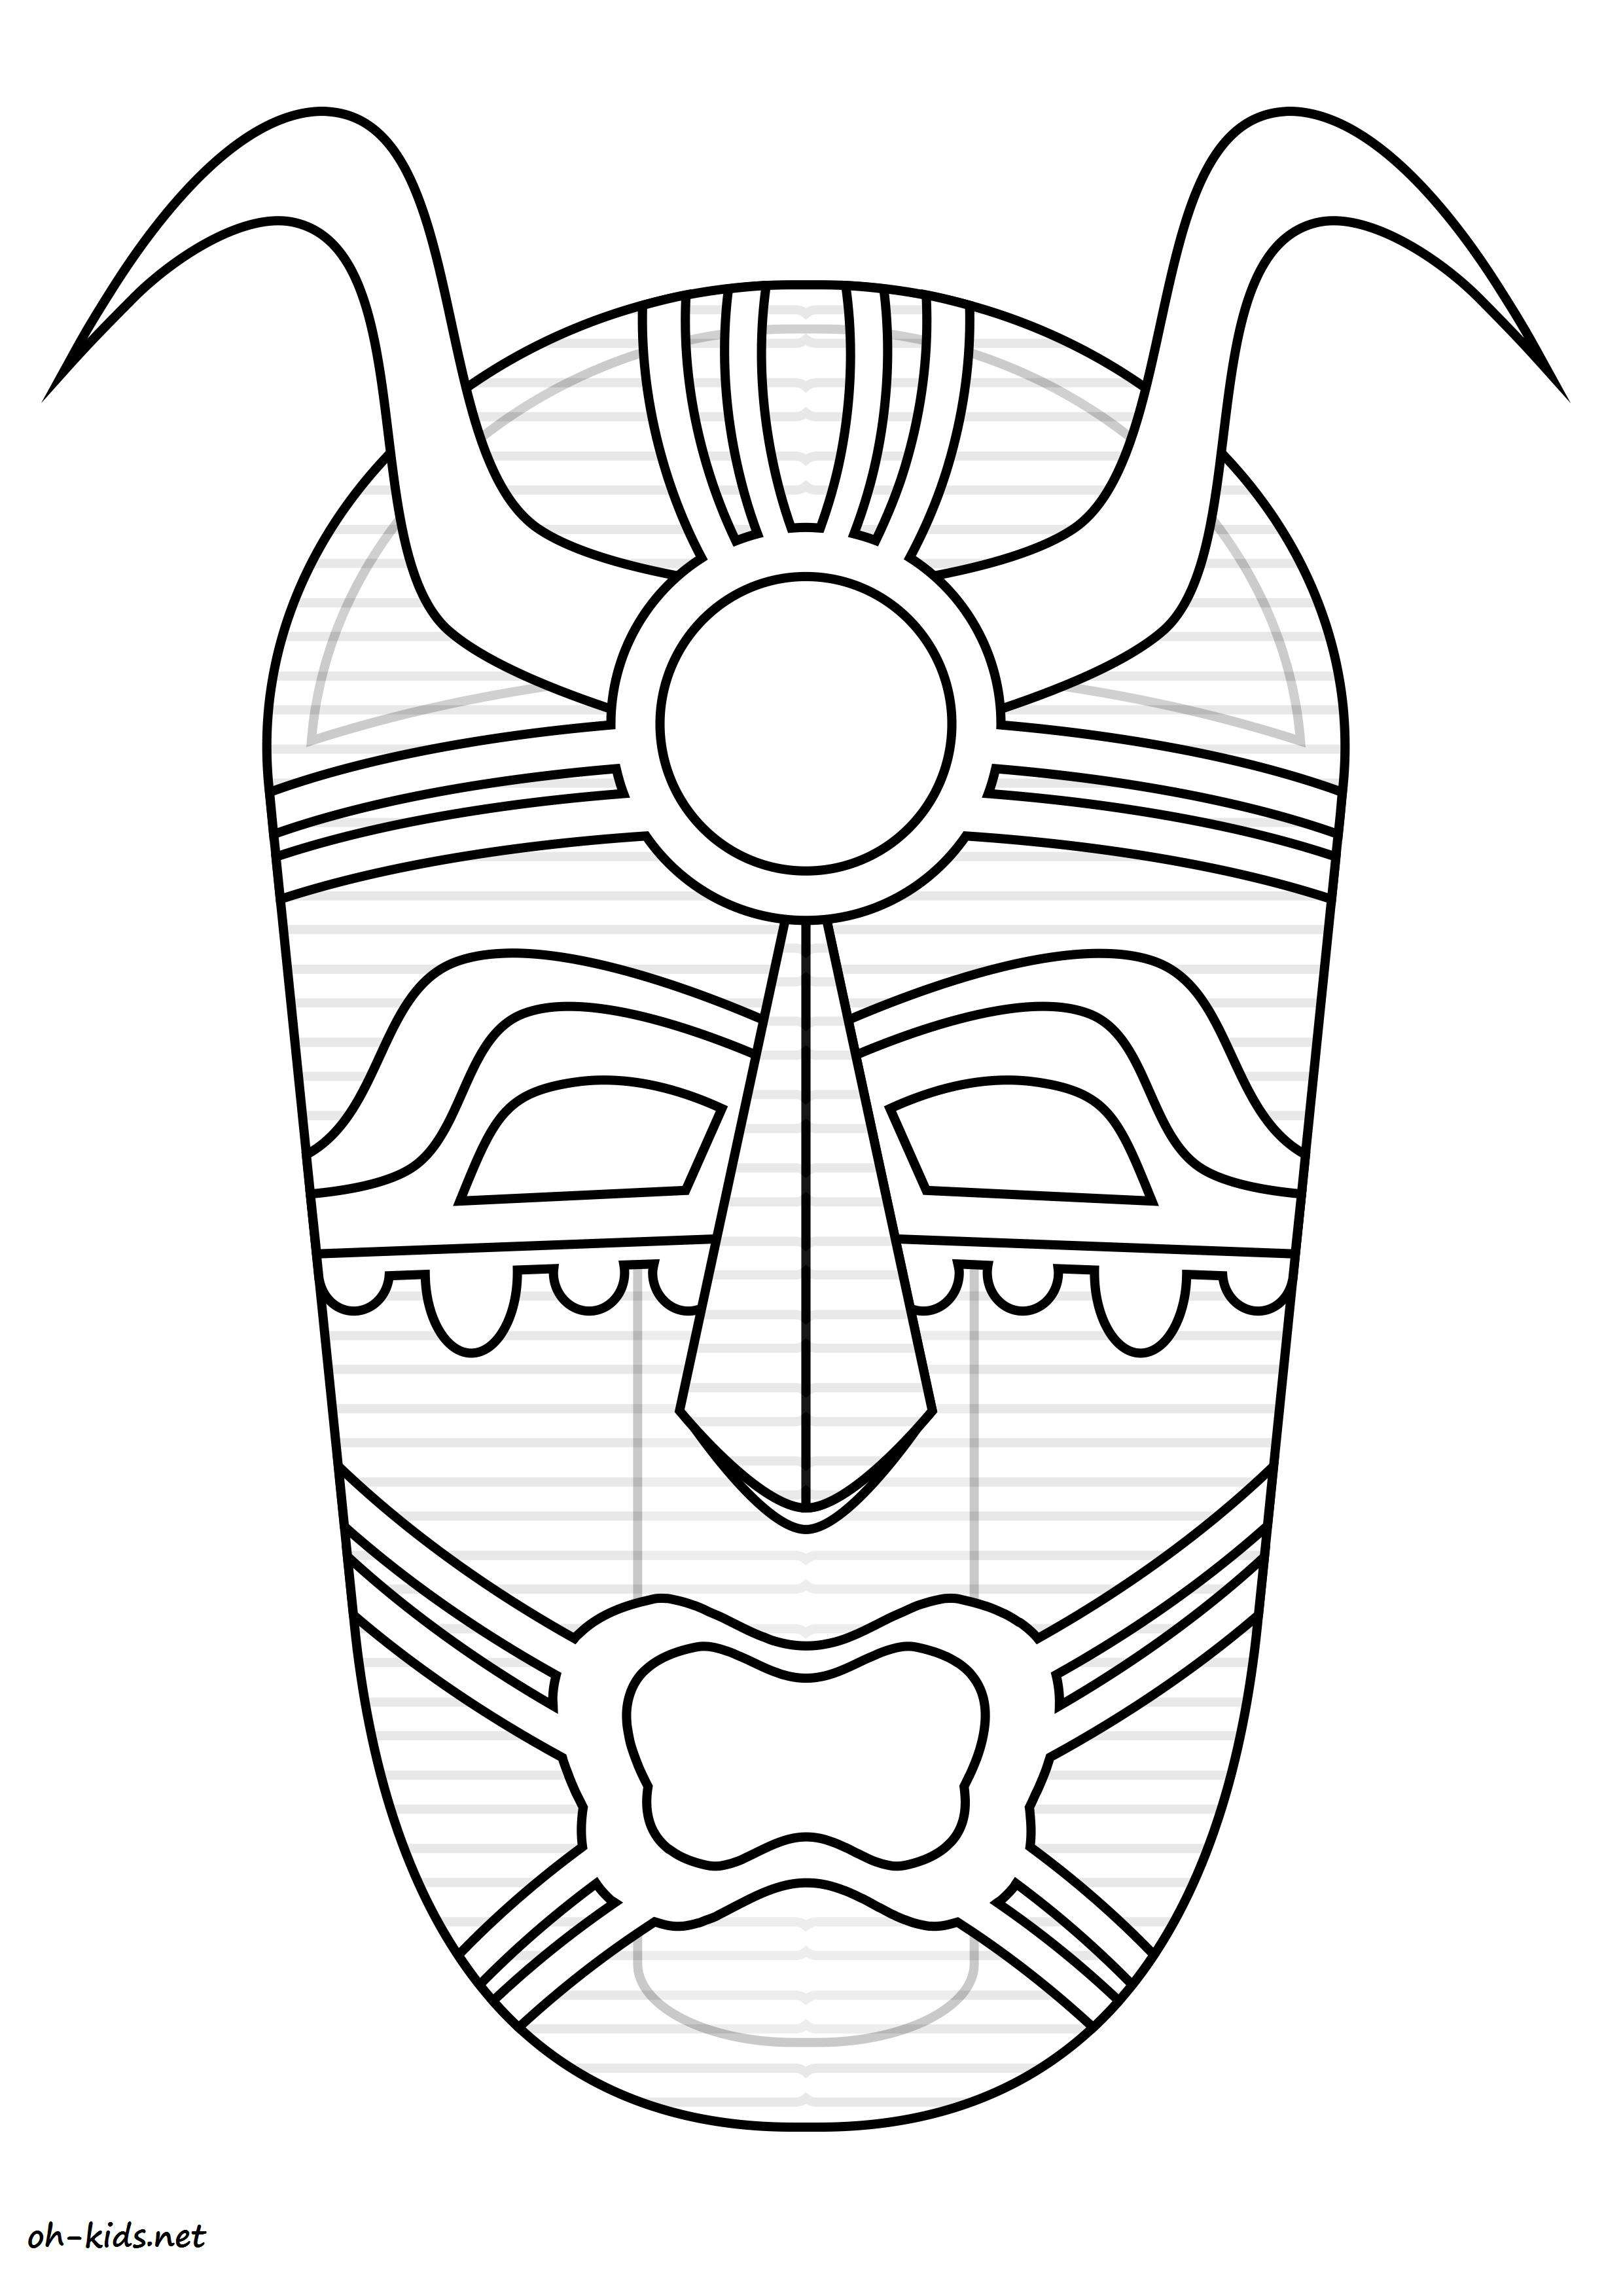 Populaire masque africain dessin fi56 montrealeast - Coloriage masques ...